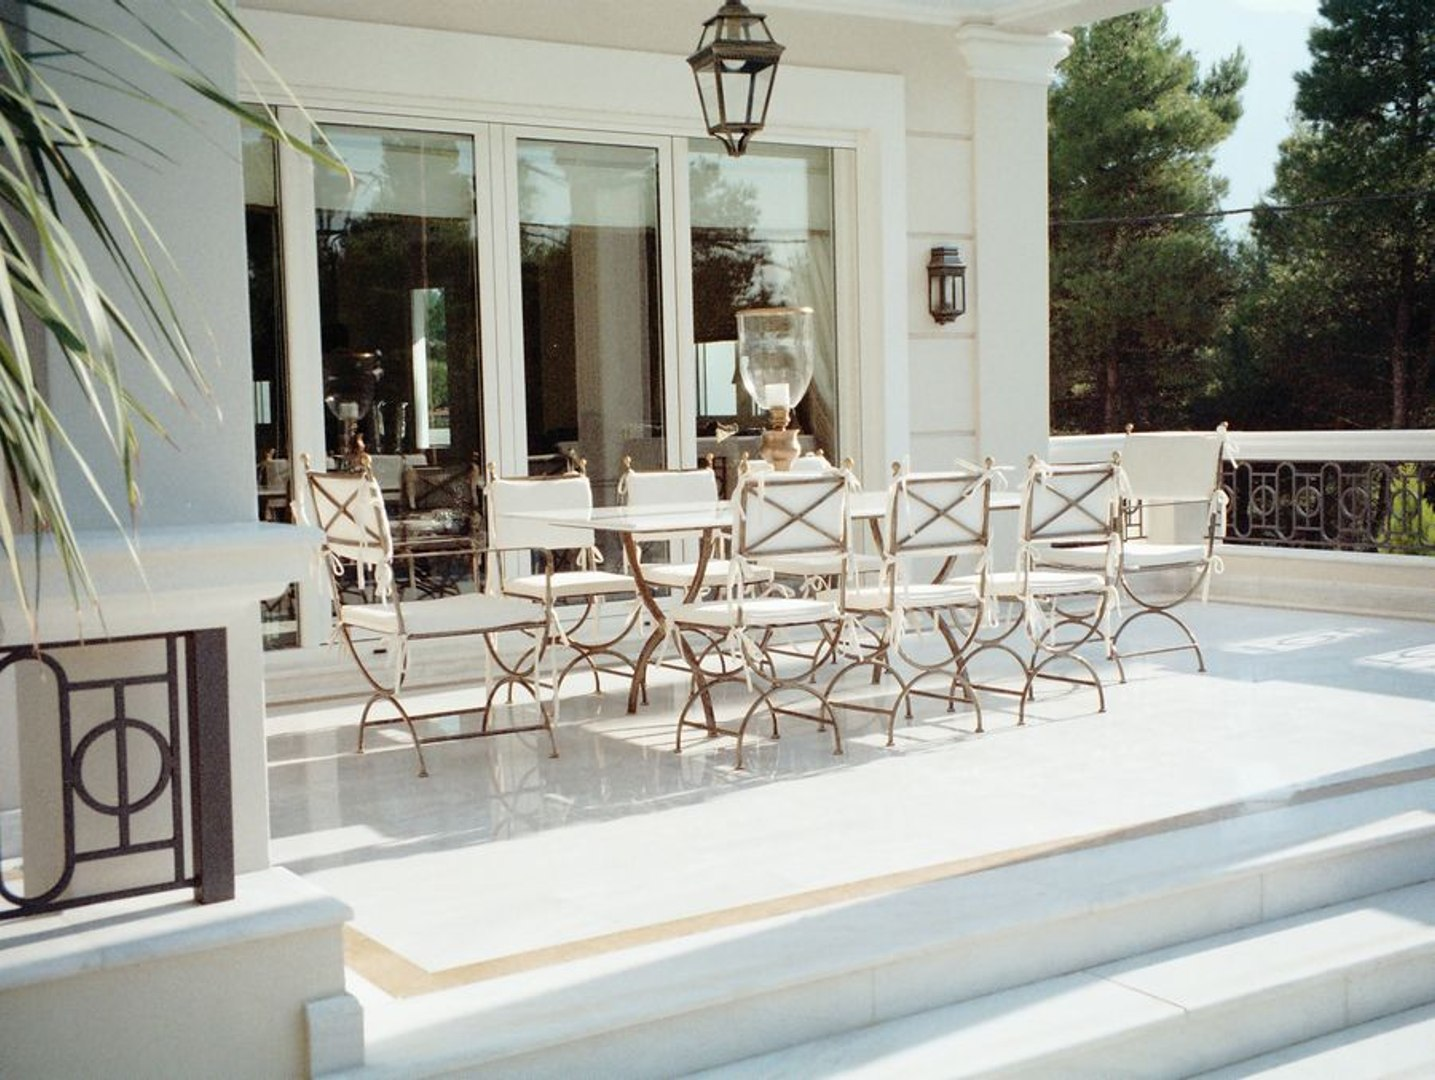 OLD STYLE Garden Lounging furniture OLD STYLE Garden Lounges Garden relaxing furniture